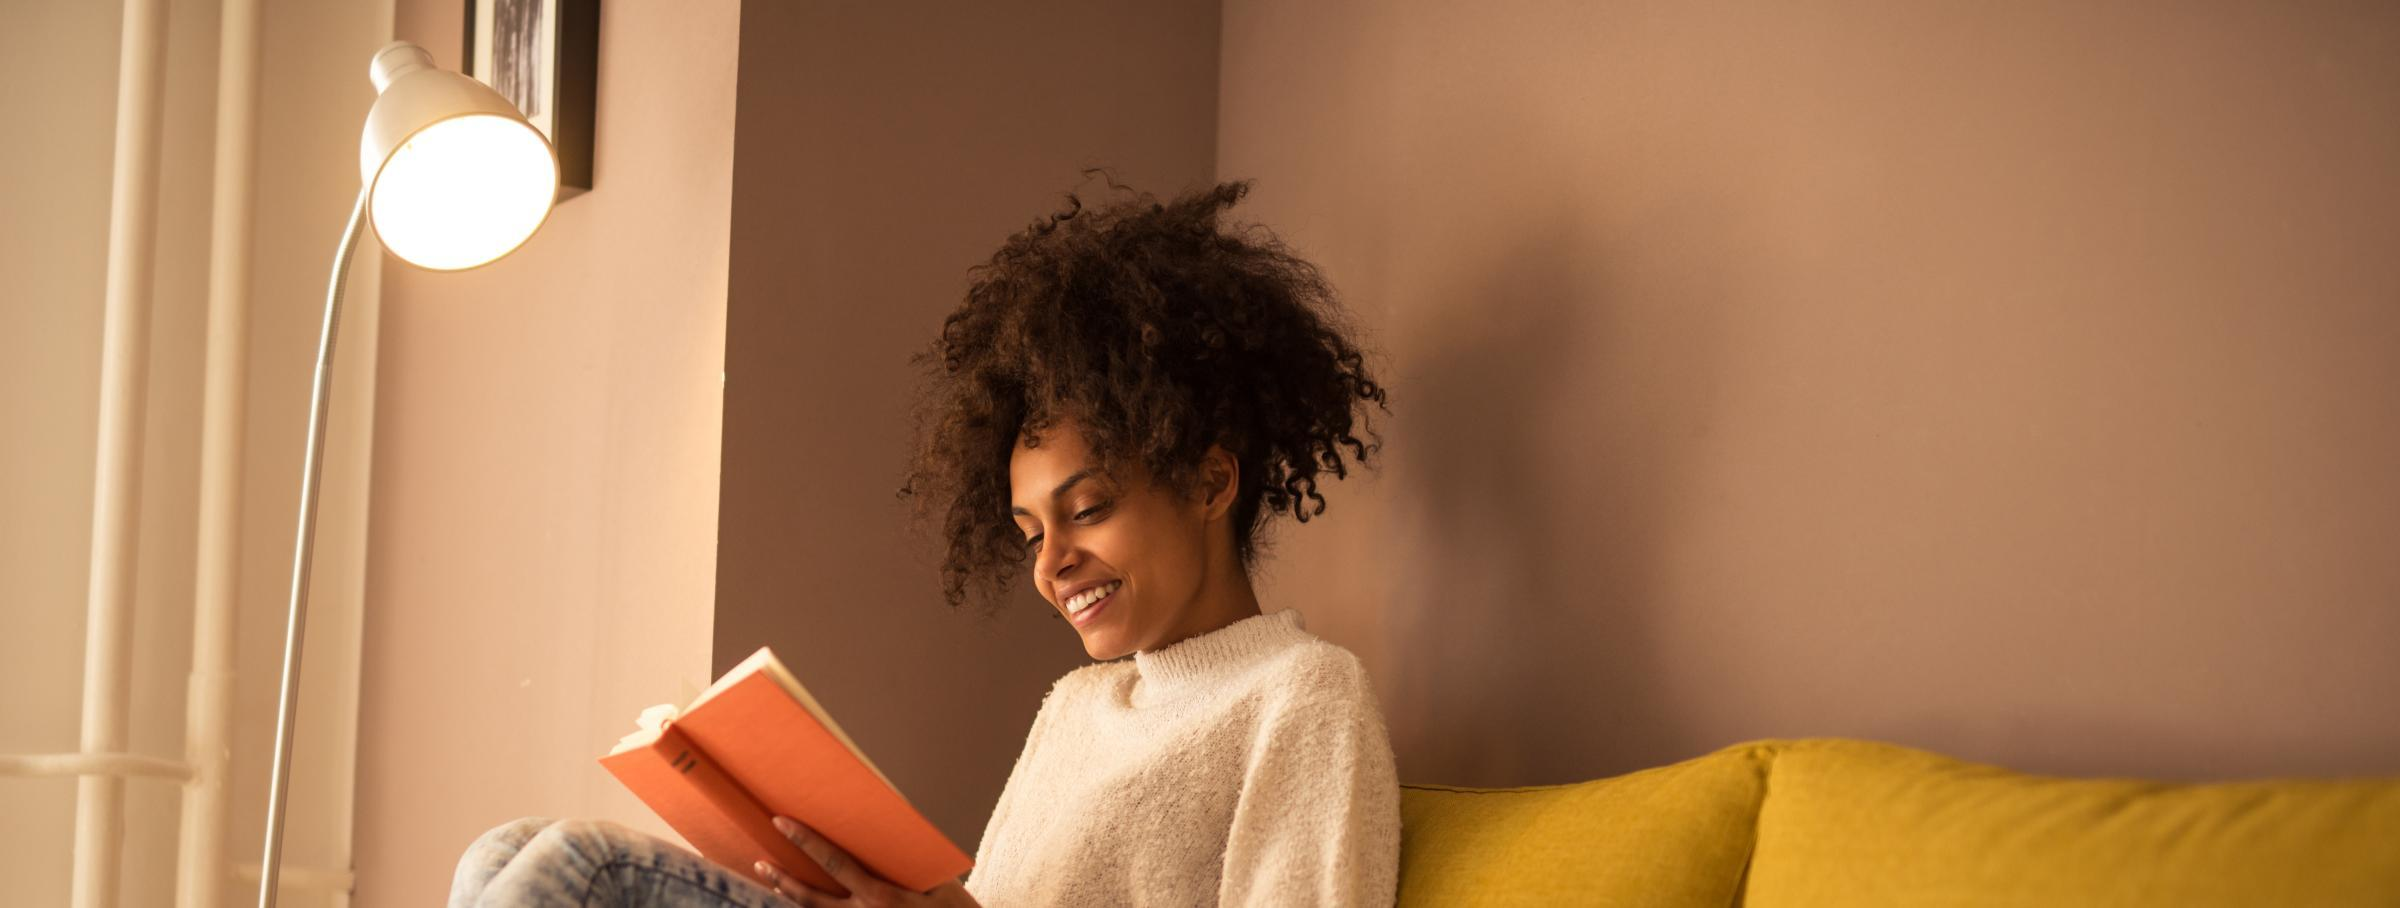 Woman reading a book under a lamp